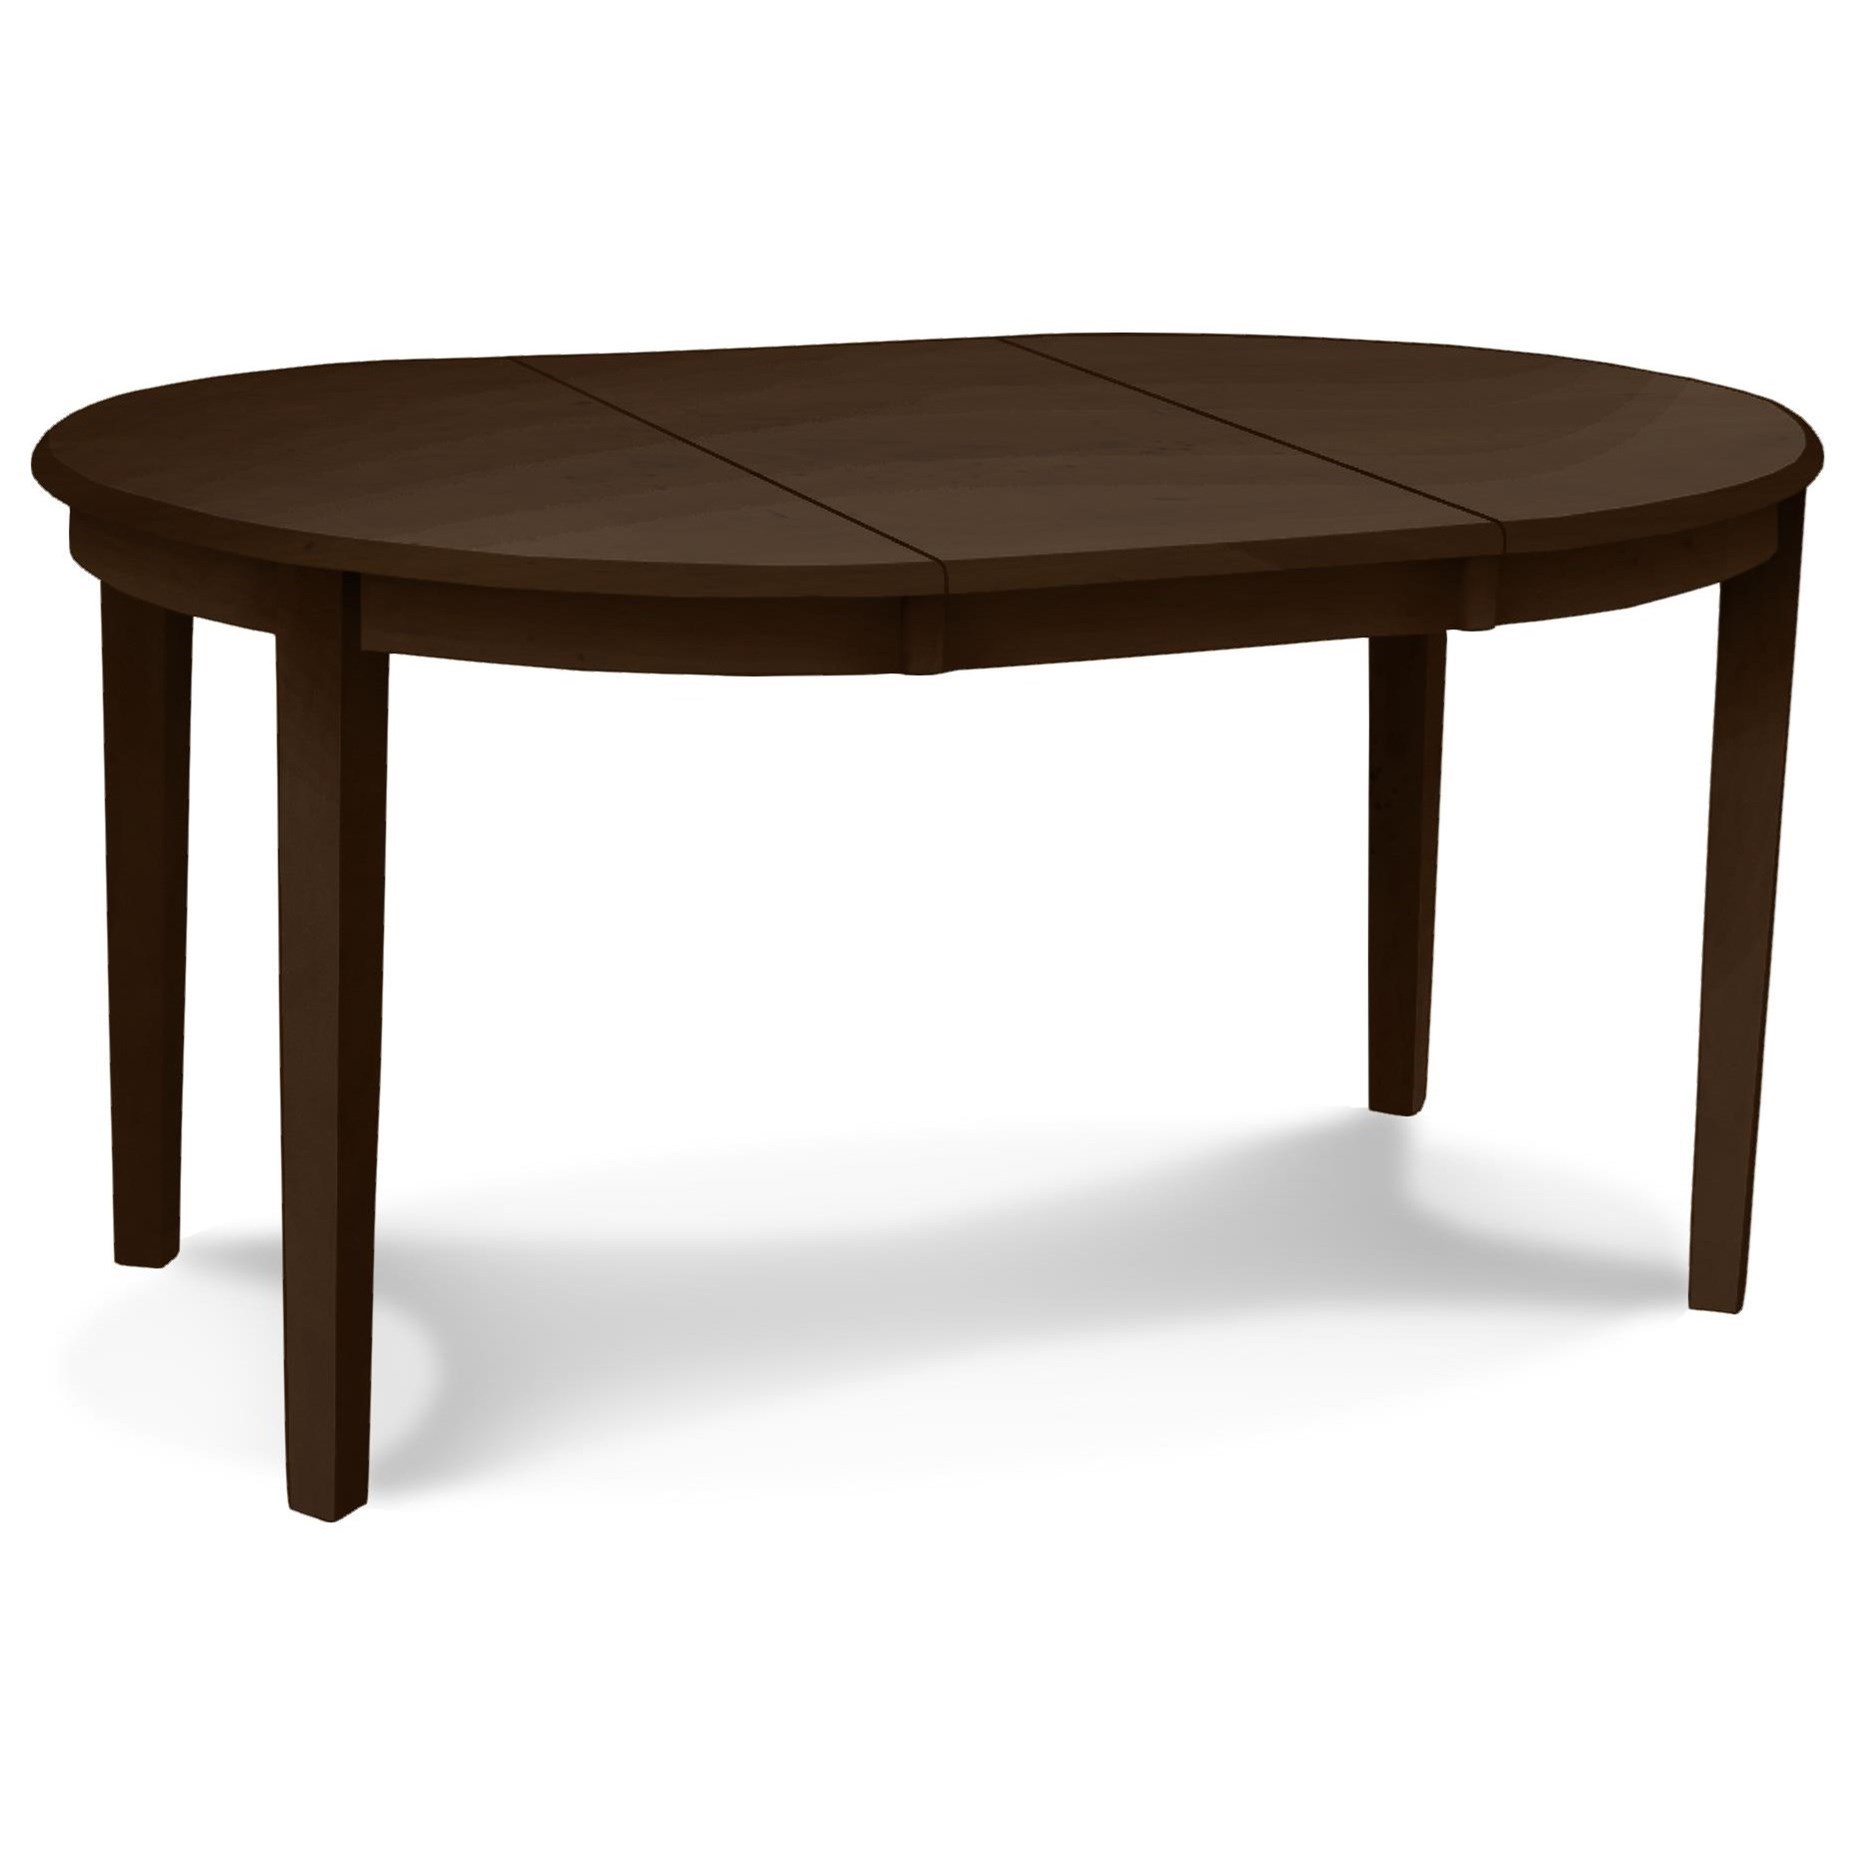 "John Thomas SELECT Dining Emily 42"" Round Table - Item Number: T-42RX-WM40"